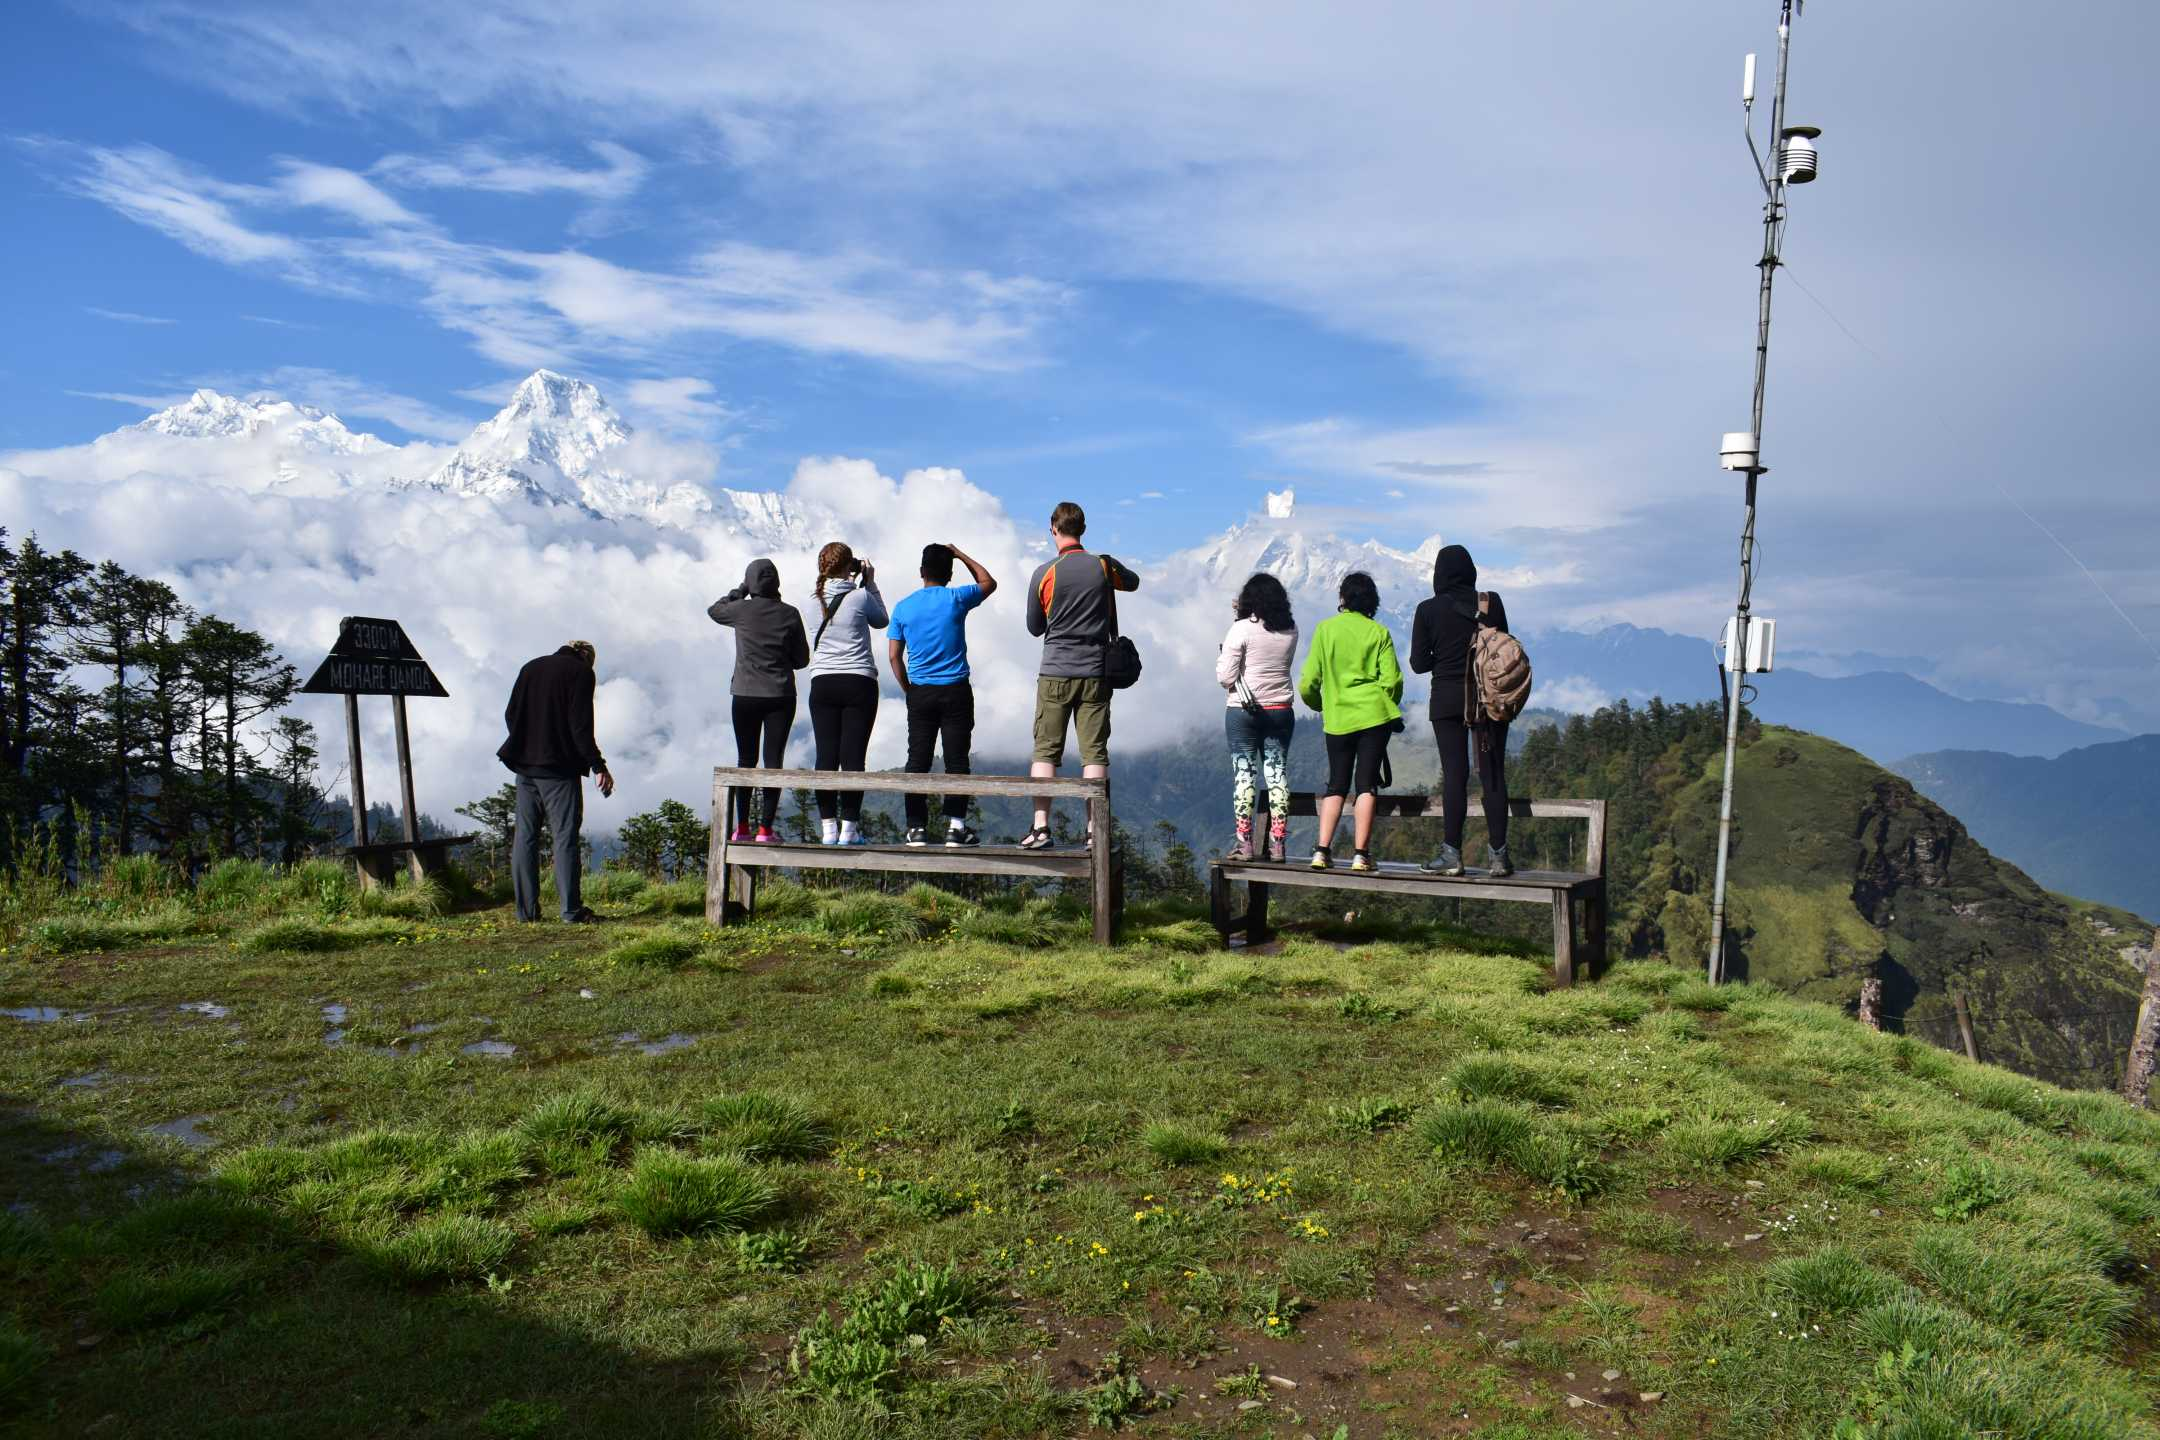 Trekkers Enjoying the panoramic views of  Himalayas, including Annapurna, Macchapucchre and Dhauligiri form Mohare Danda